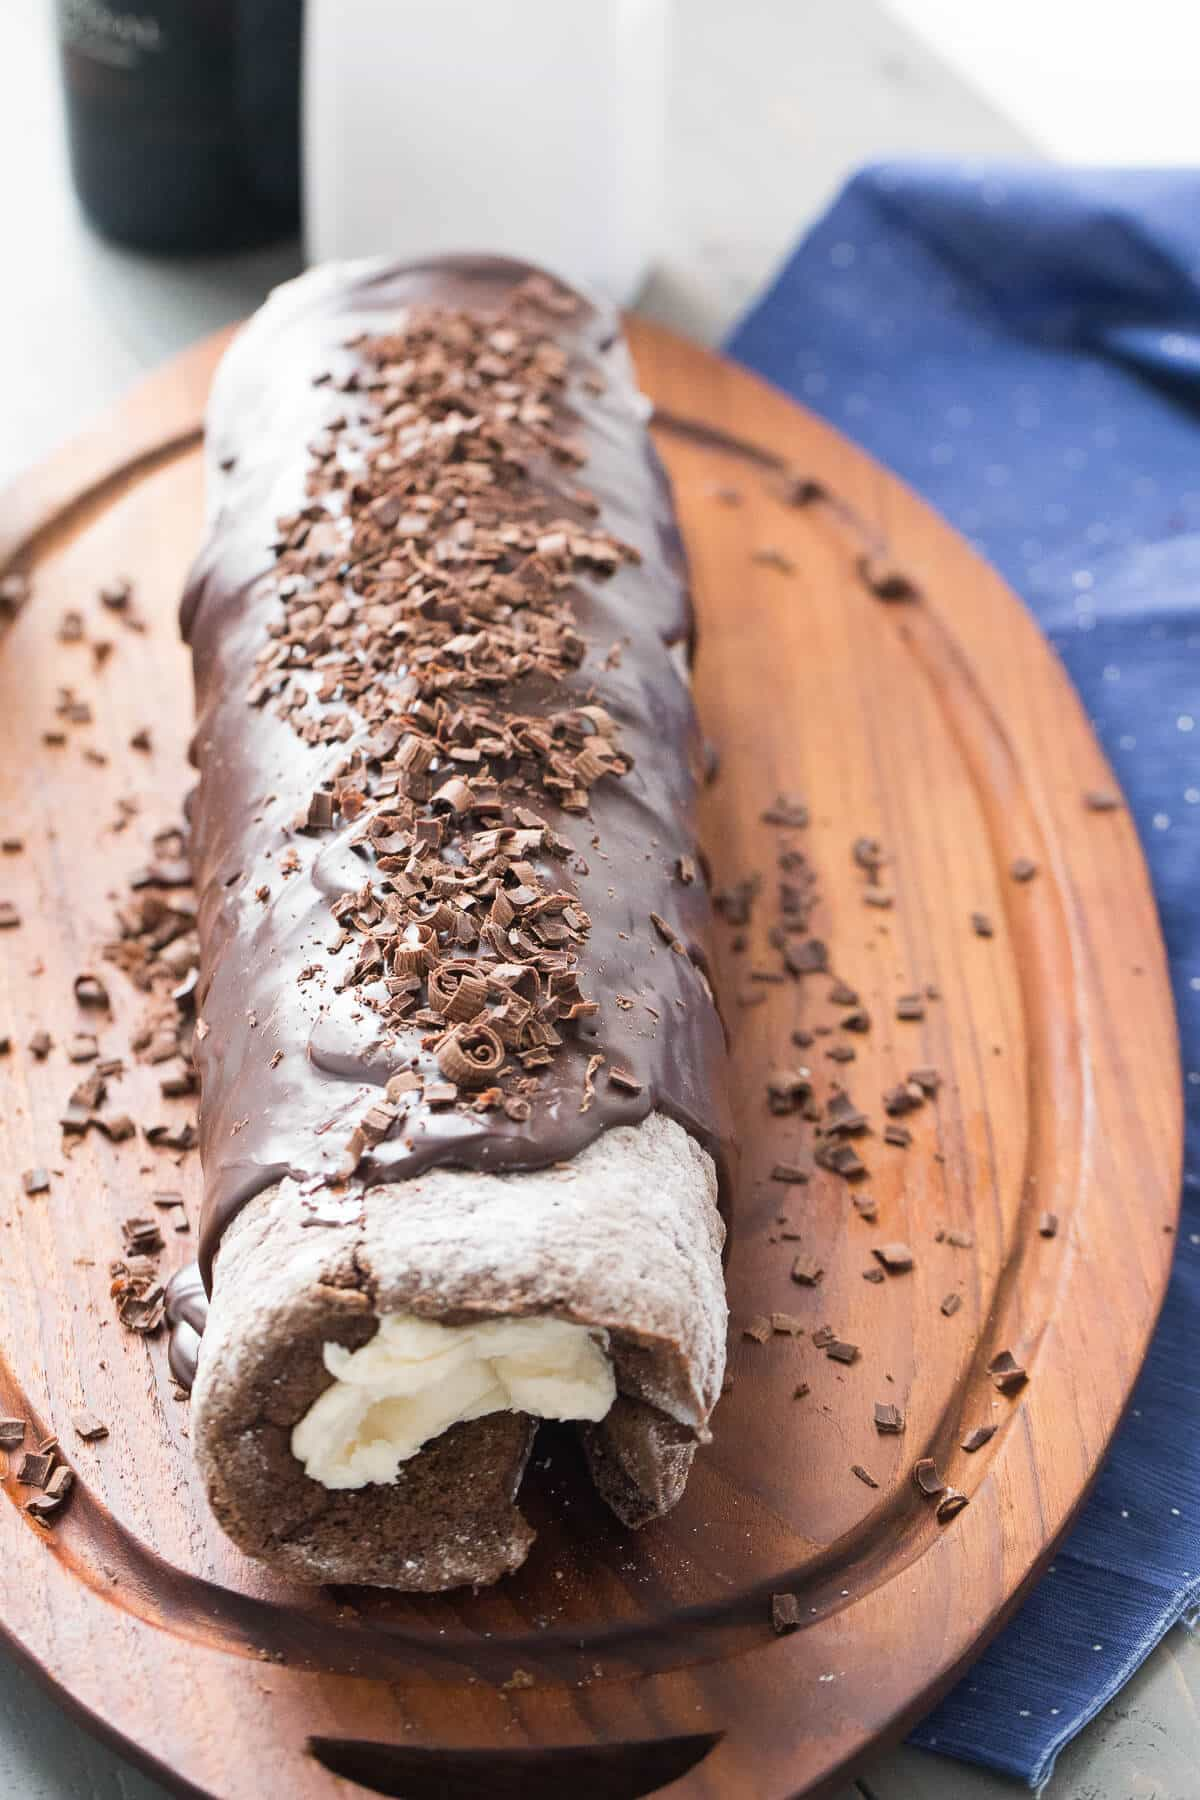 This chocolate roll has a hint of mocha and a creamy Bailey's filling! The Baileys ganache sets it apart!